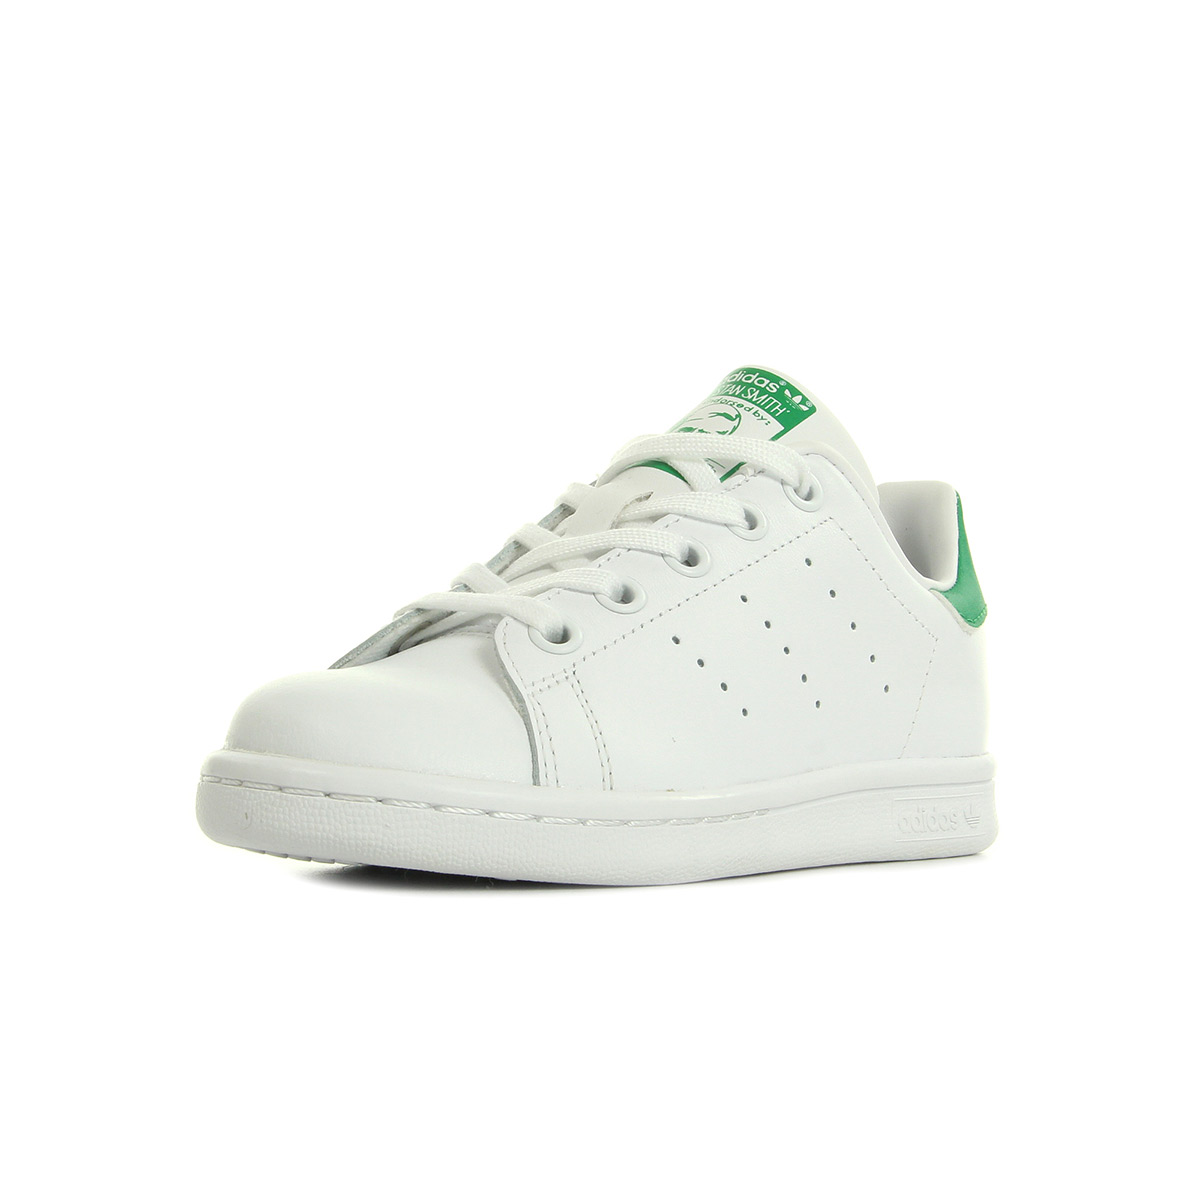 72ba951e494ad Chaussures Baskets adidas unisexe Stan Smith taille Blanc Blanche ...